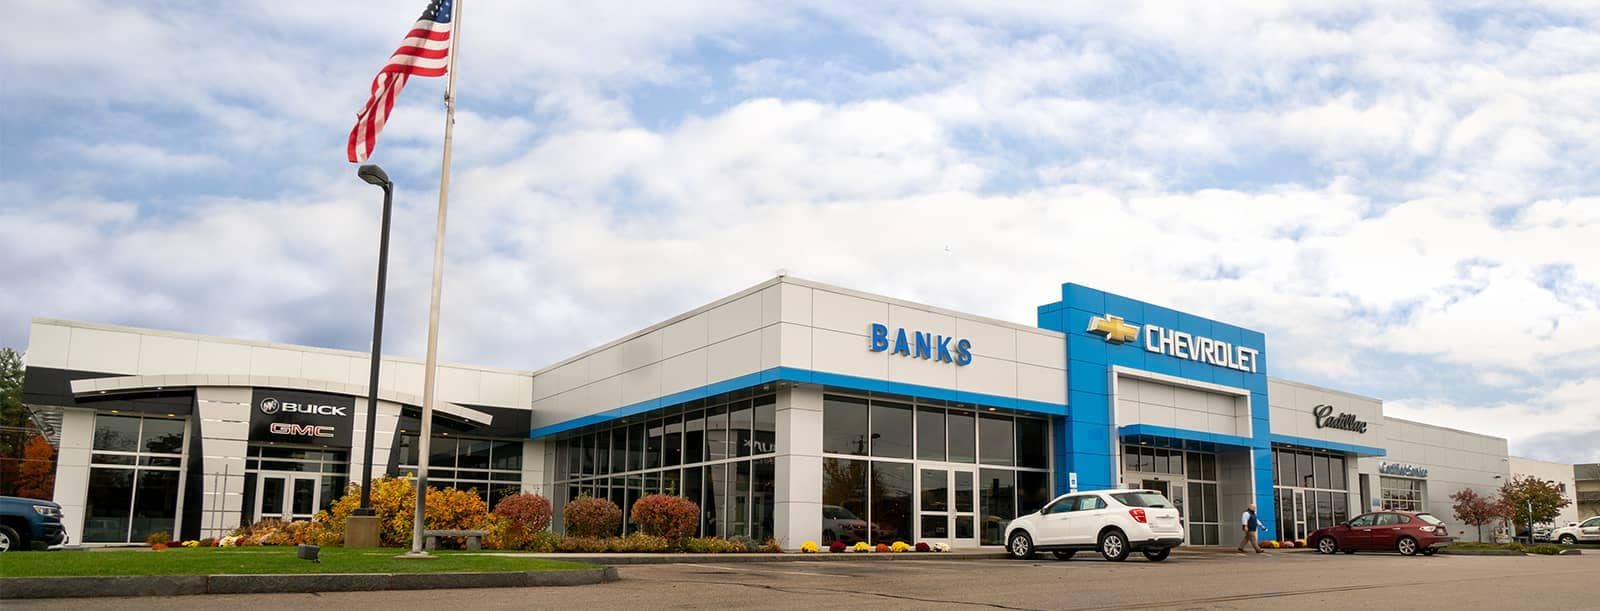 Banks Chevy Gmc Cadillac Buick Dealer Concord Nh Manchester Nh